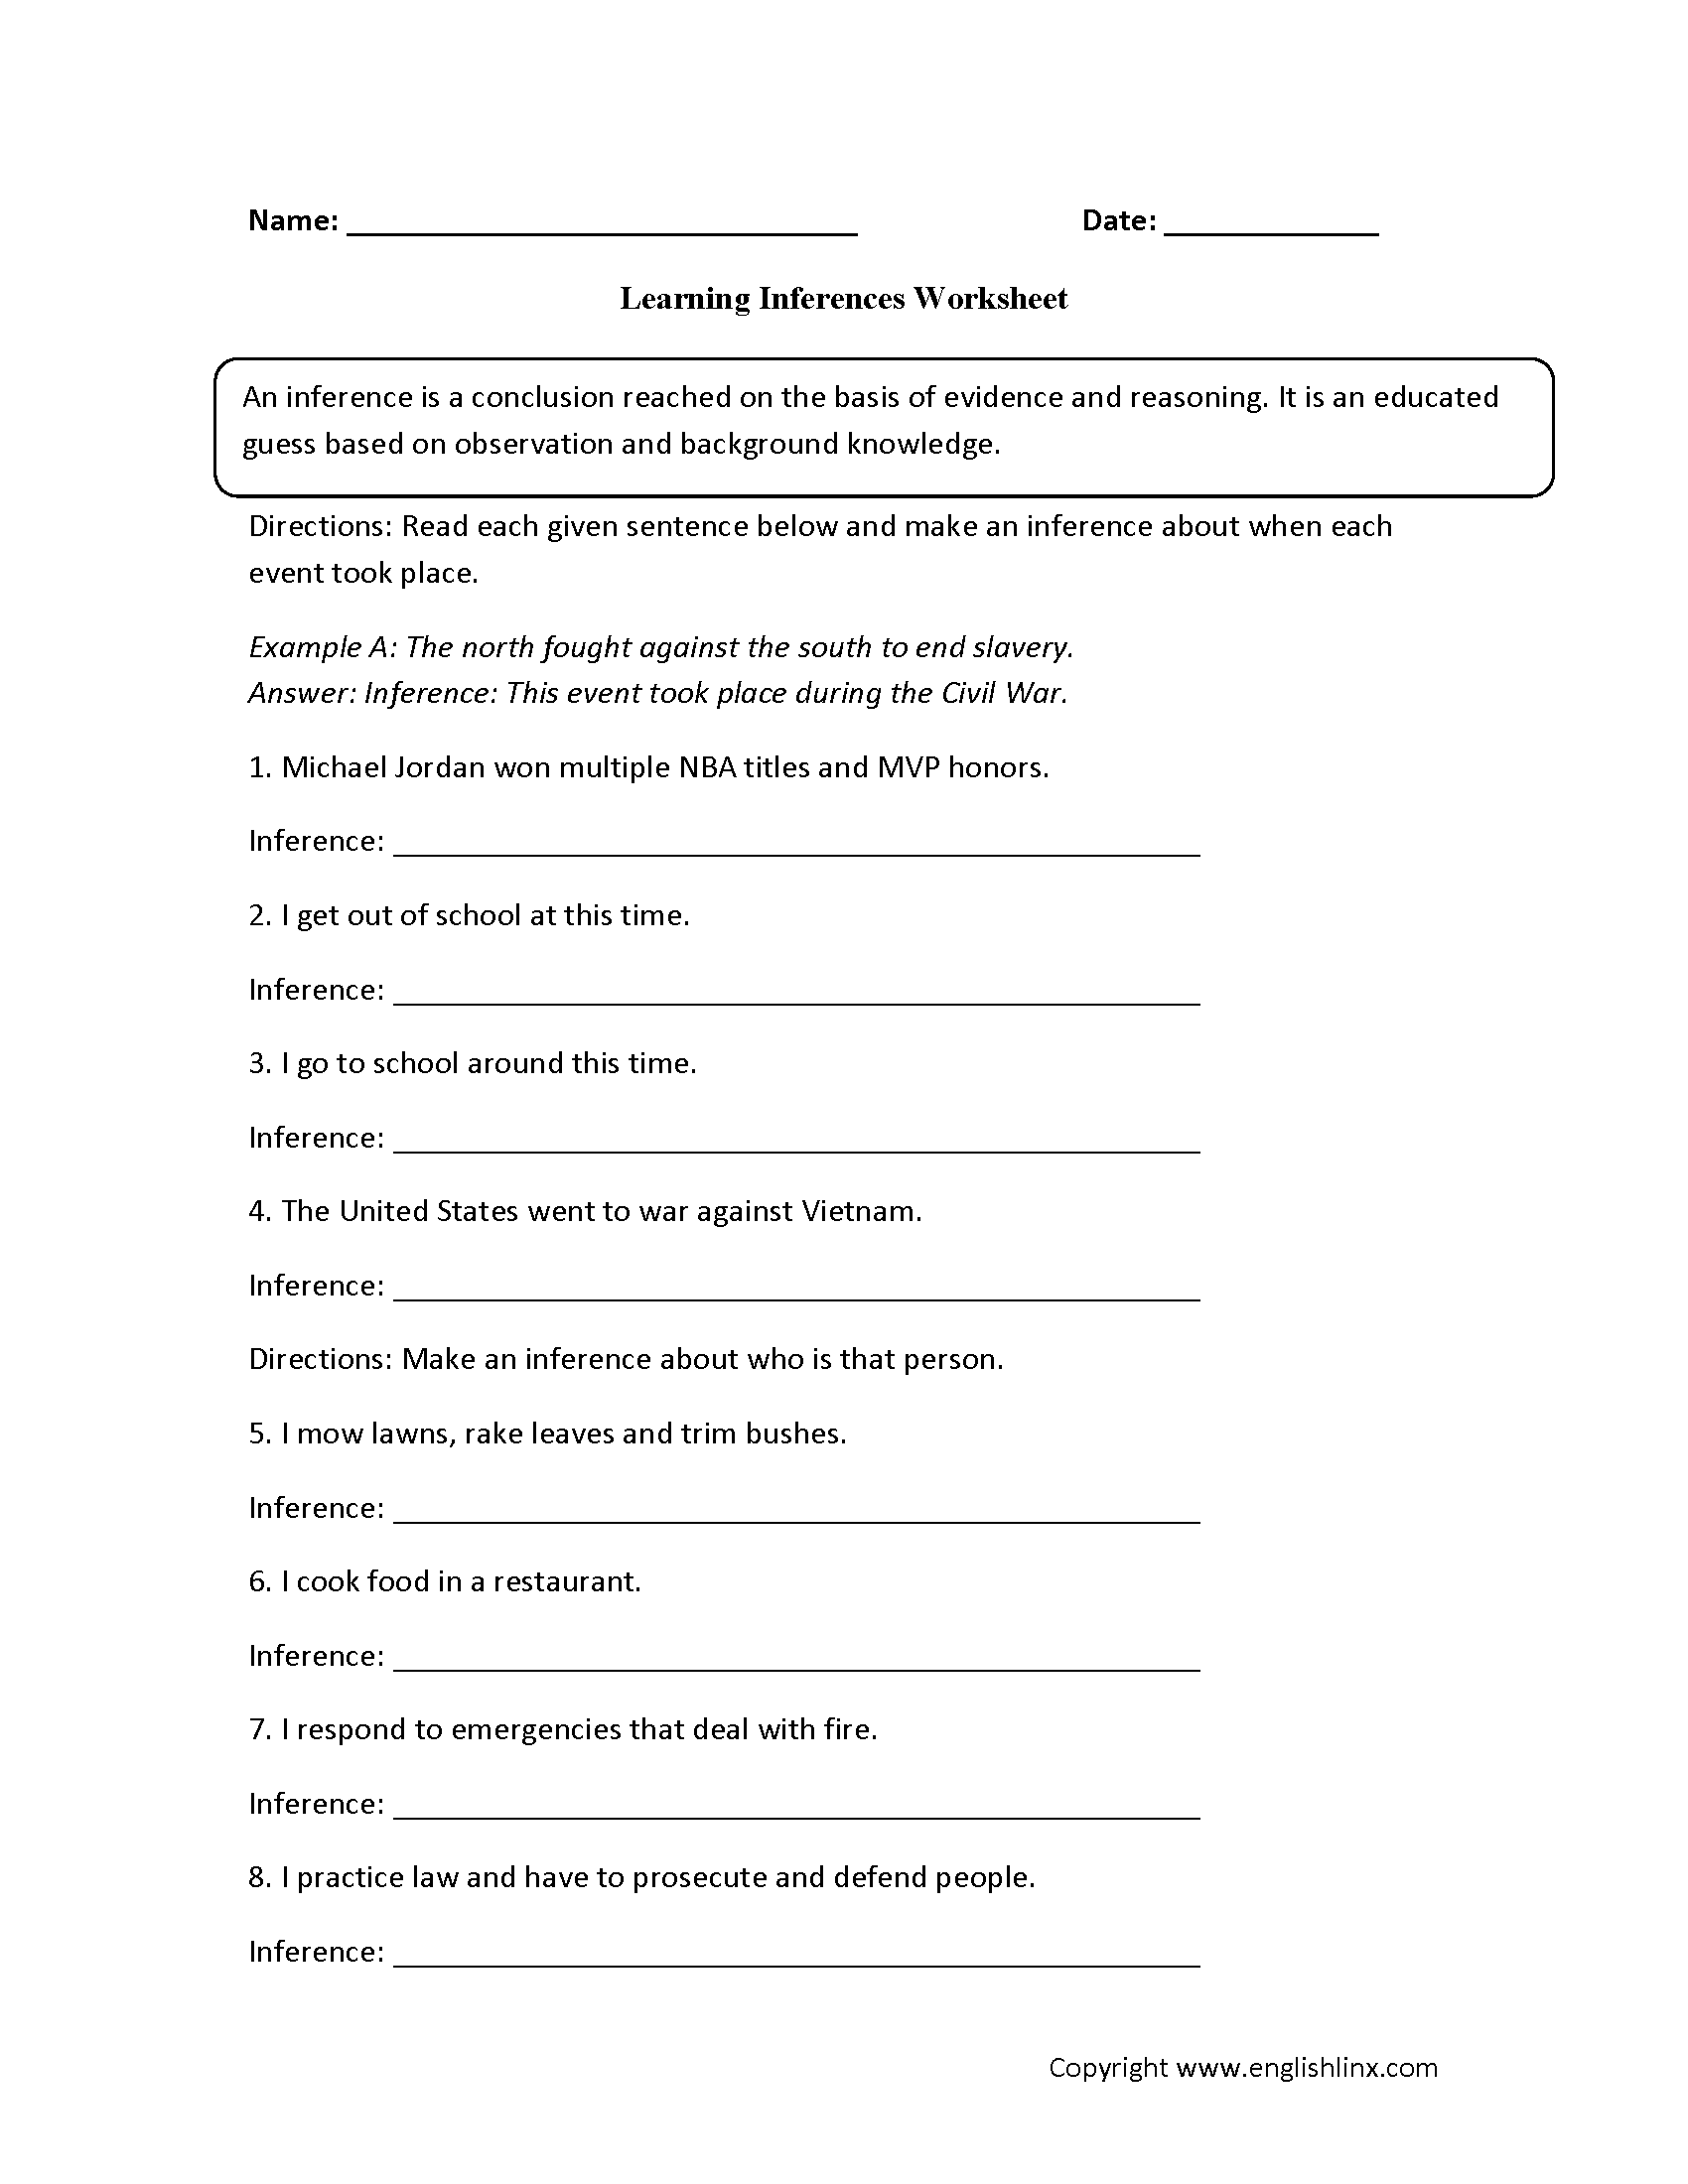 Learning Inference Worksheets Englishlinx Com Board Inference